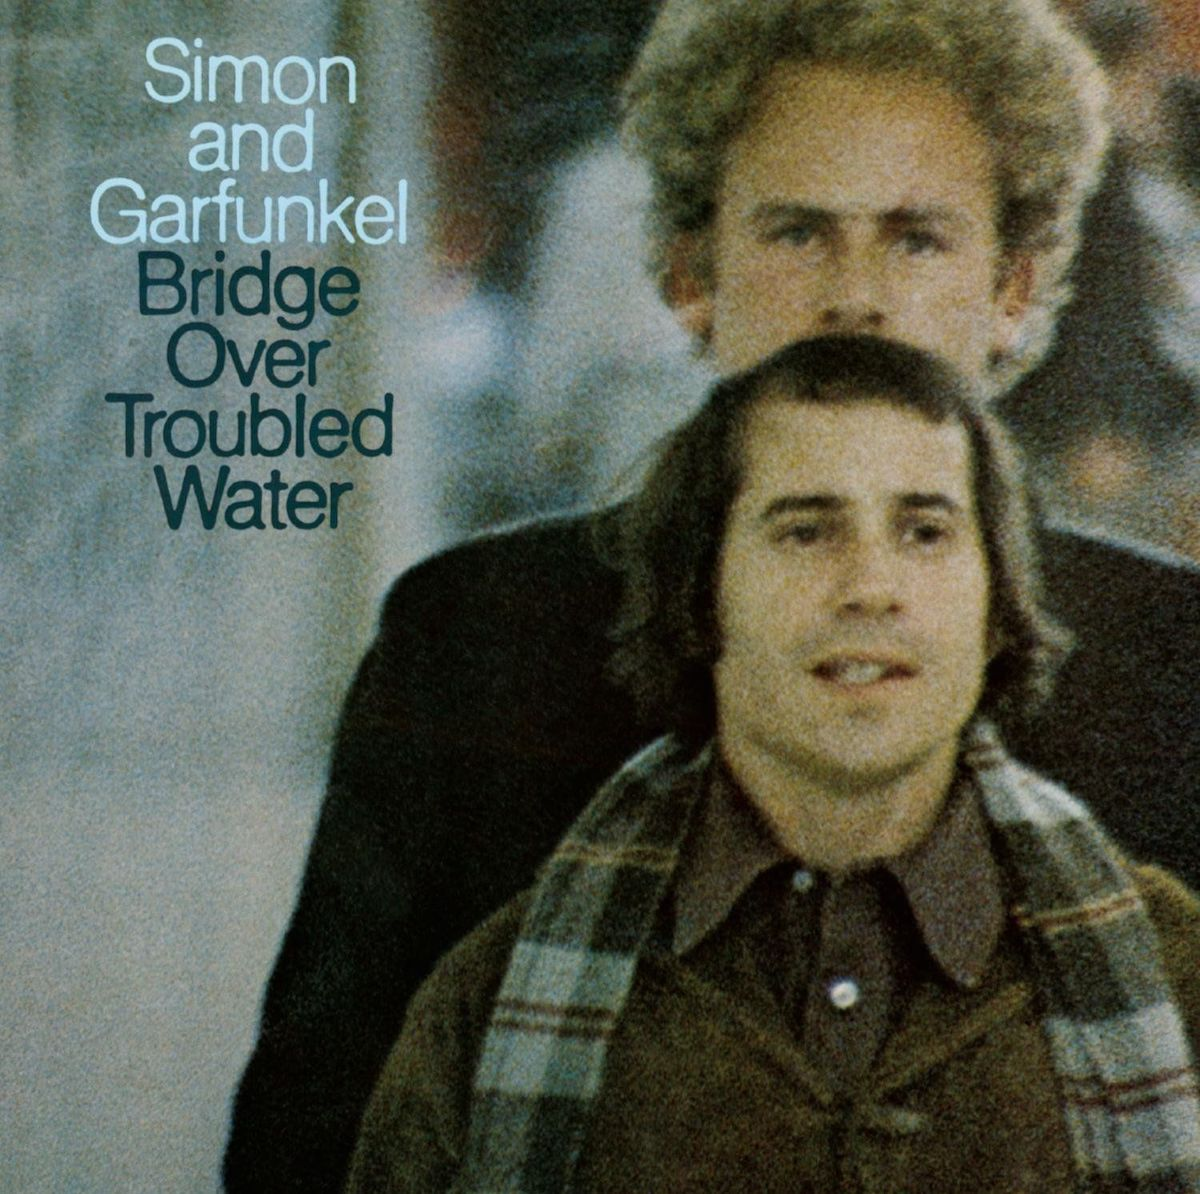 """album cover for simon and garfunkel's """"bridge over troubled water"""""""